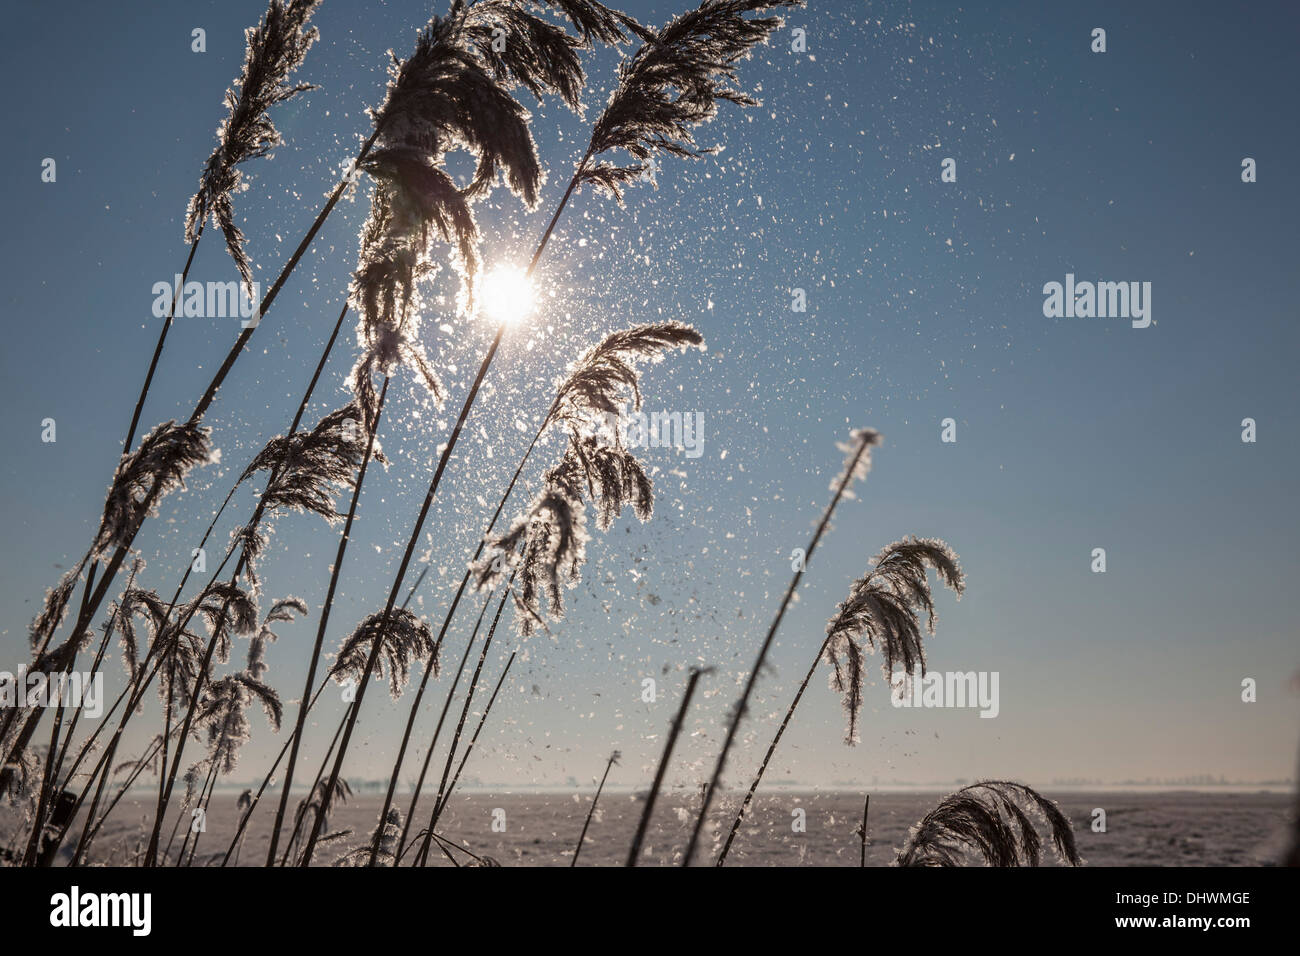 Netherlands, Zegveld, ice crystals on reed plume. background willow trees. Winter - Stock Image